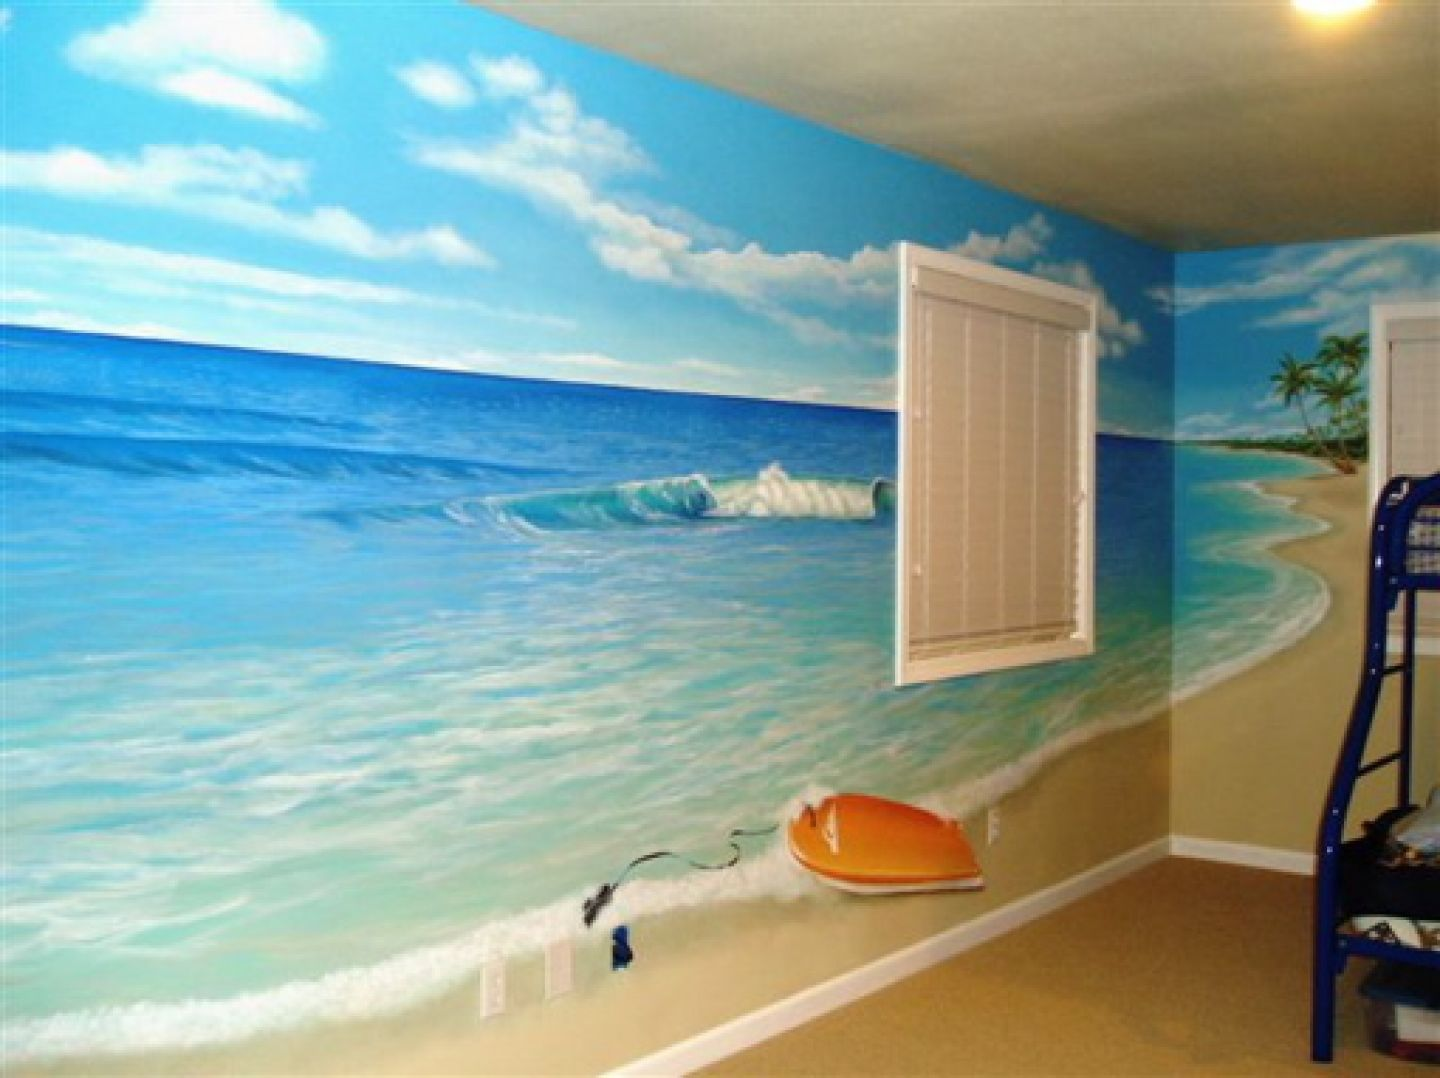 BEACH MURAL IDEAS TO PAINT ON DIVIDER WALL tags beach beach